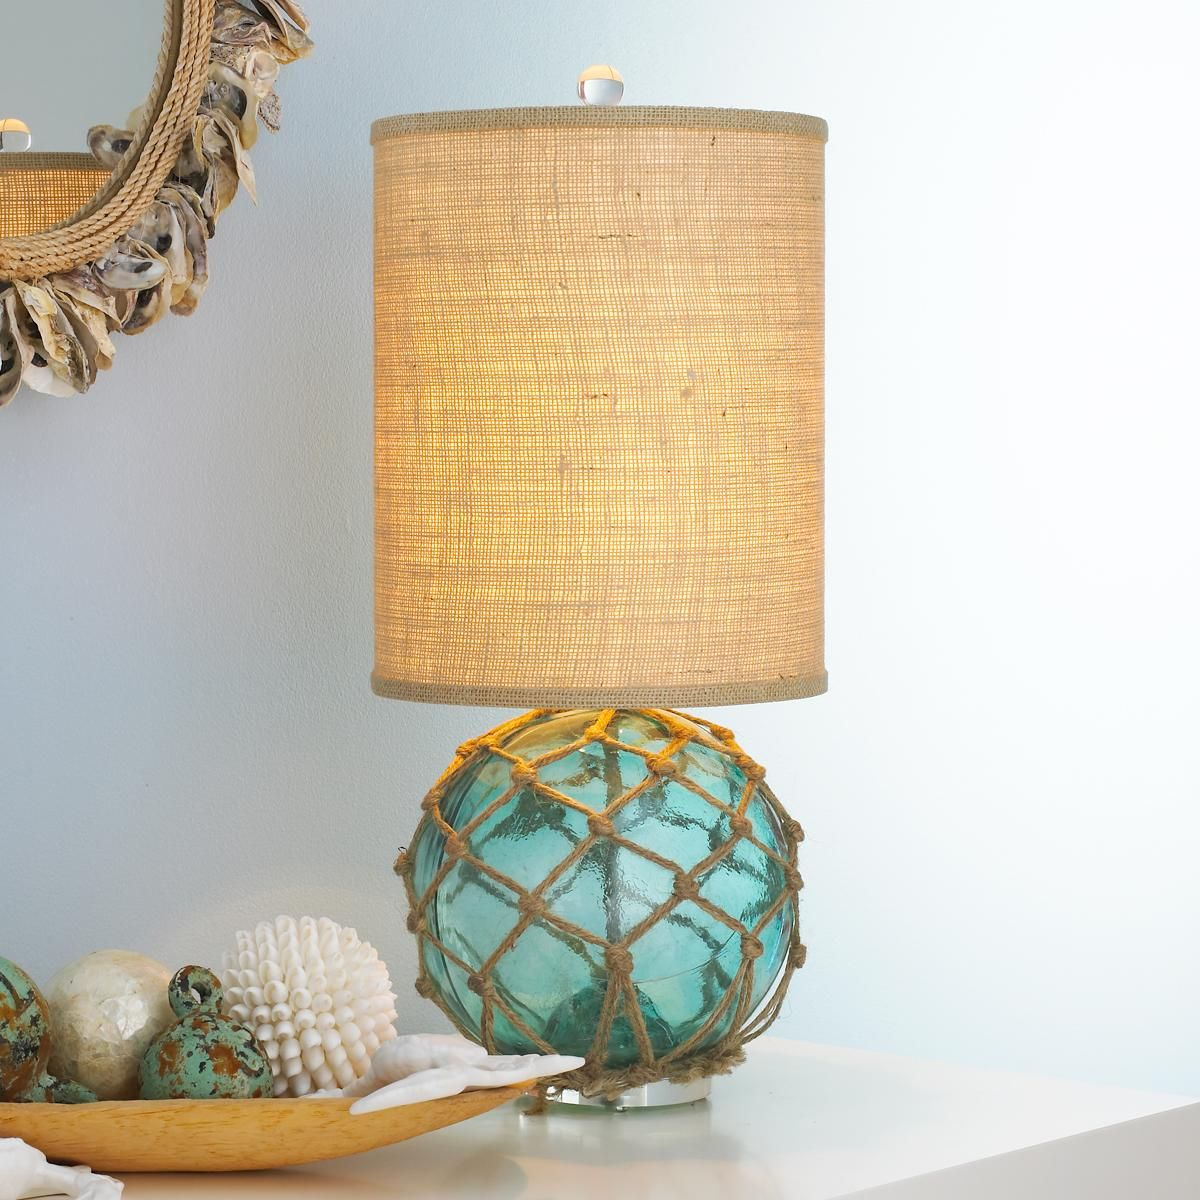 Modern Buoy Glass Table Lamp A Modern Twist On A Vintage Find Explains The  Combination Of